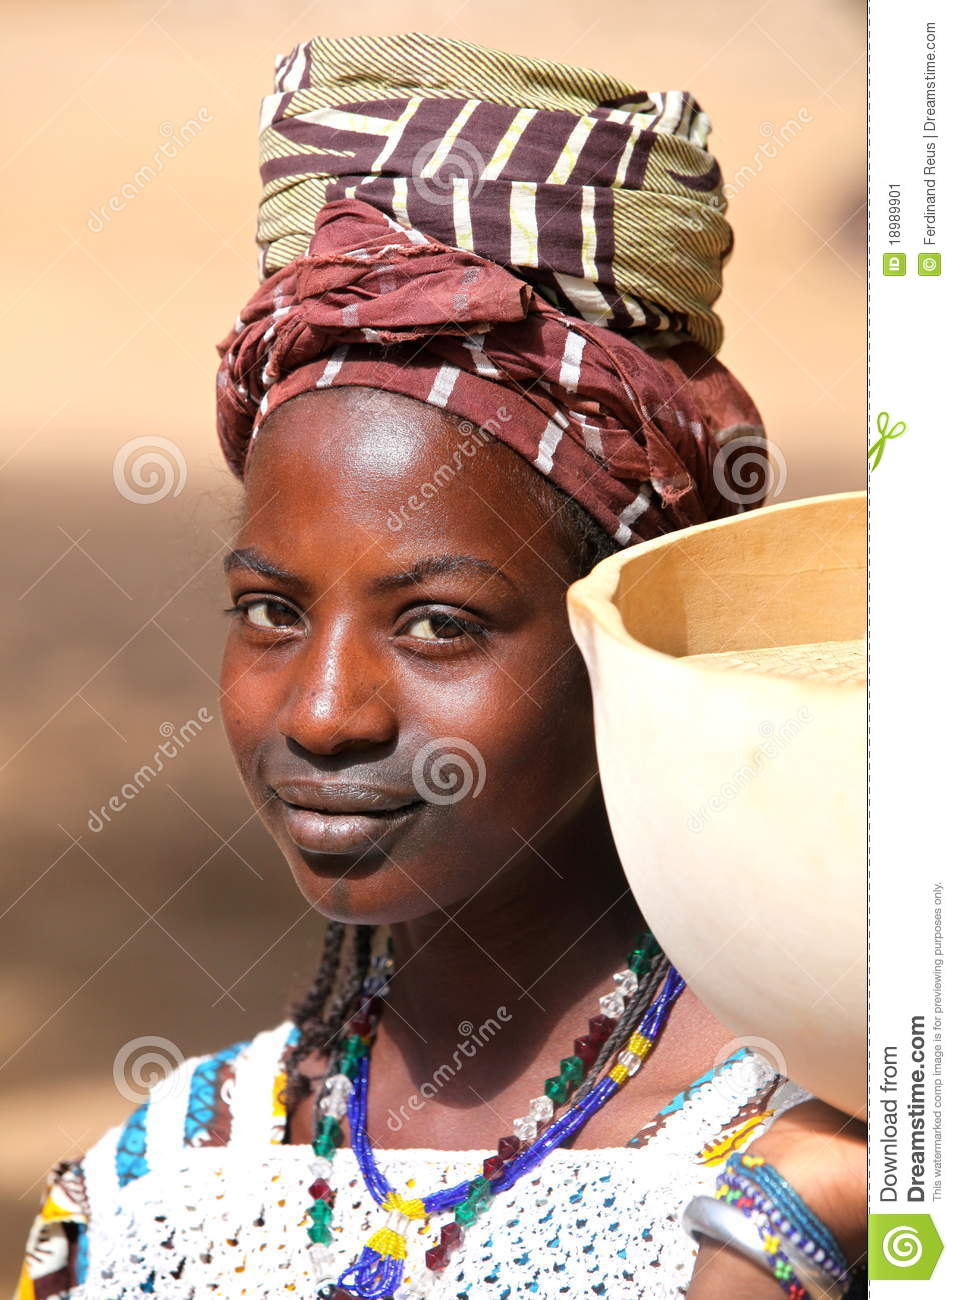 130 Girl Malawi Africa Photos Free Royalty Free Stock Photos From Dreamstime